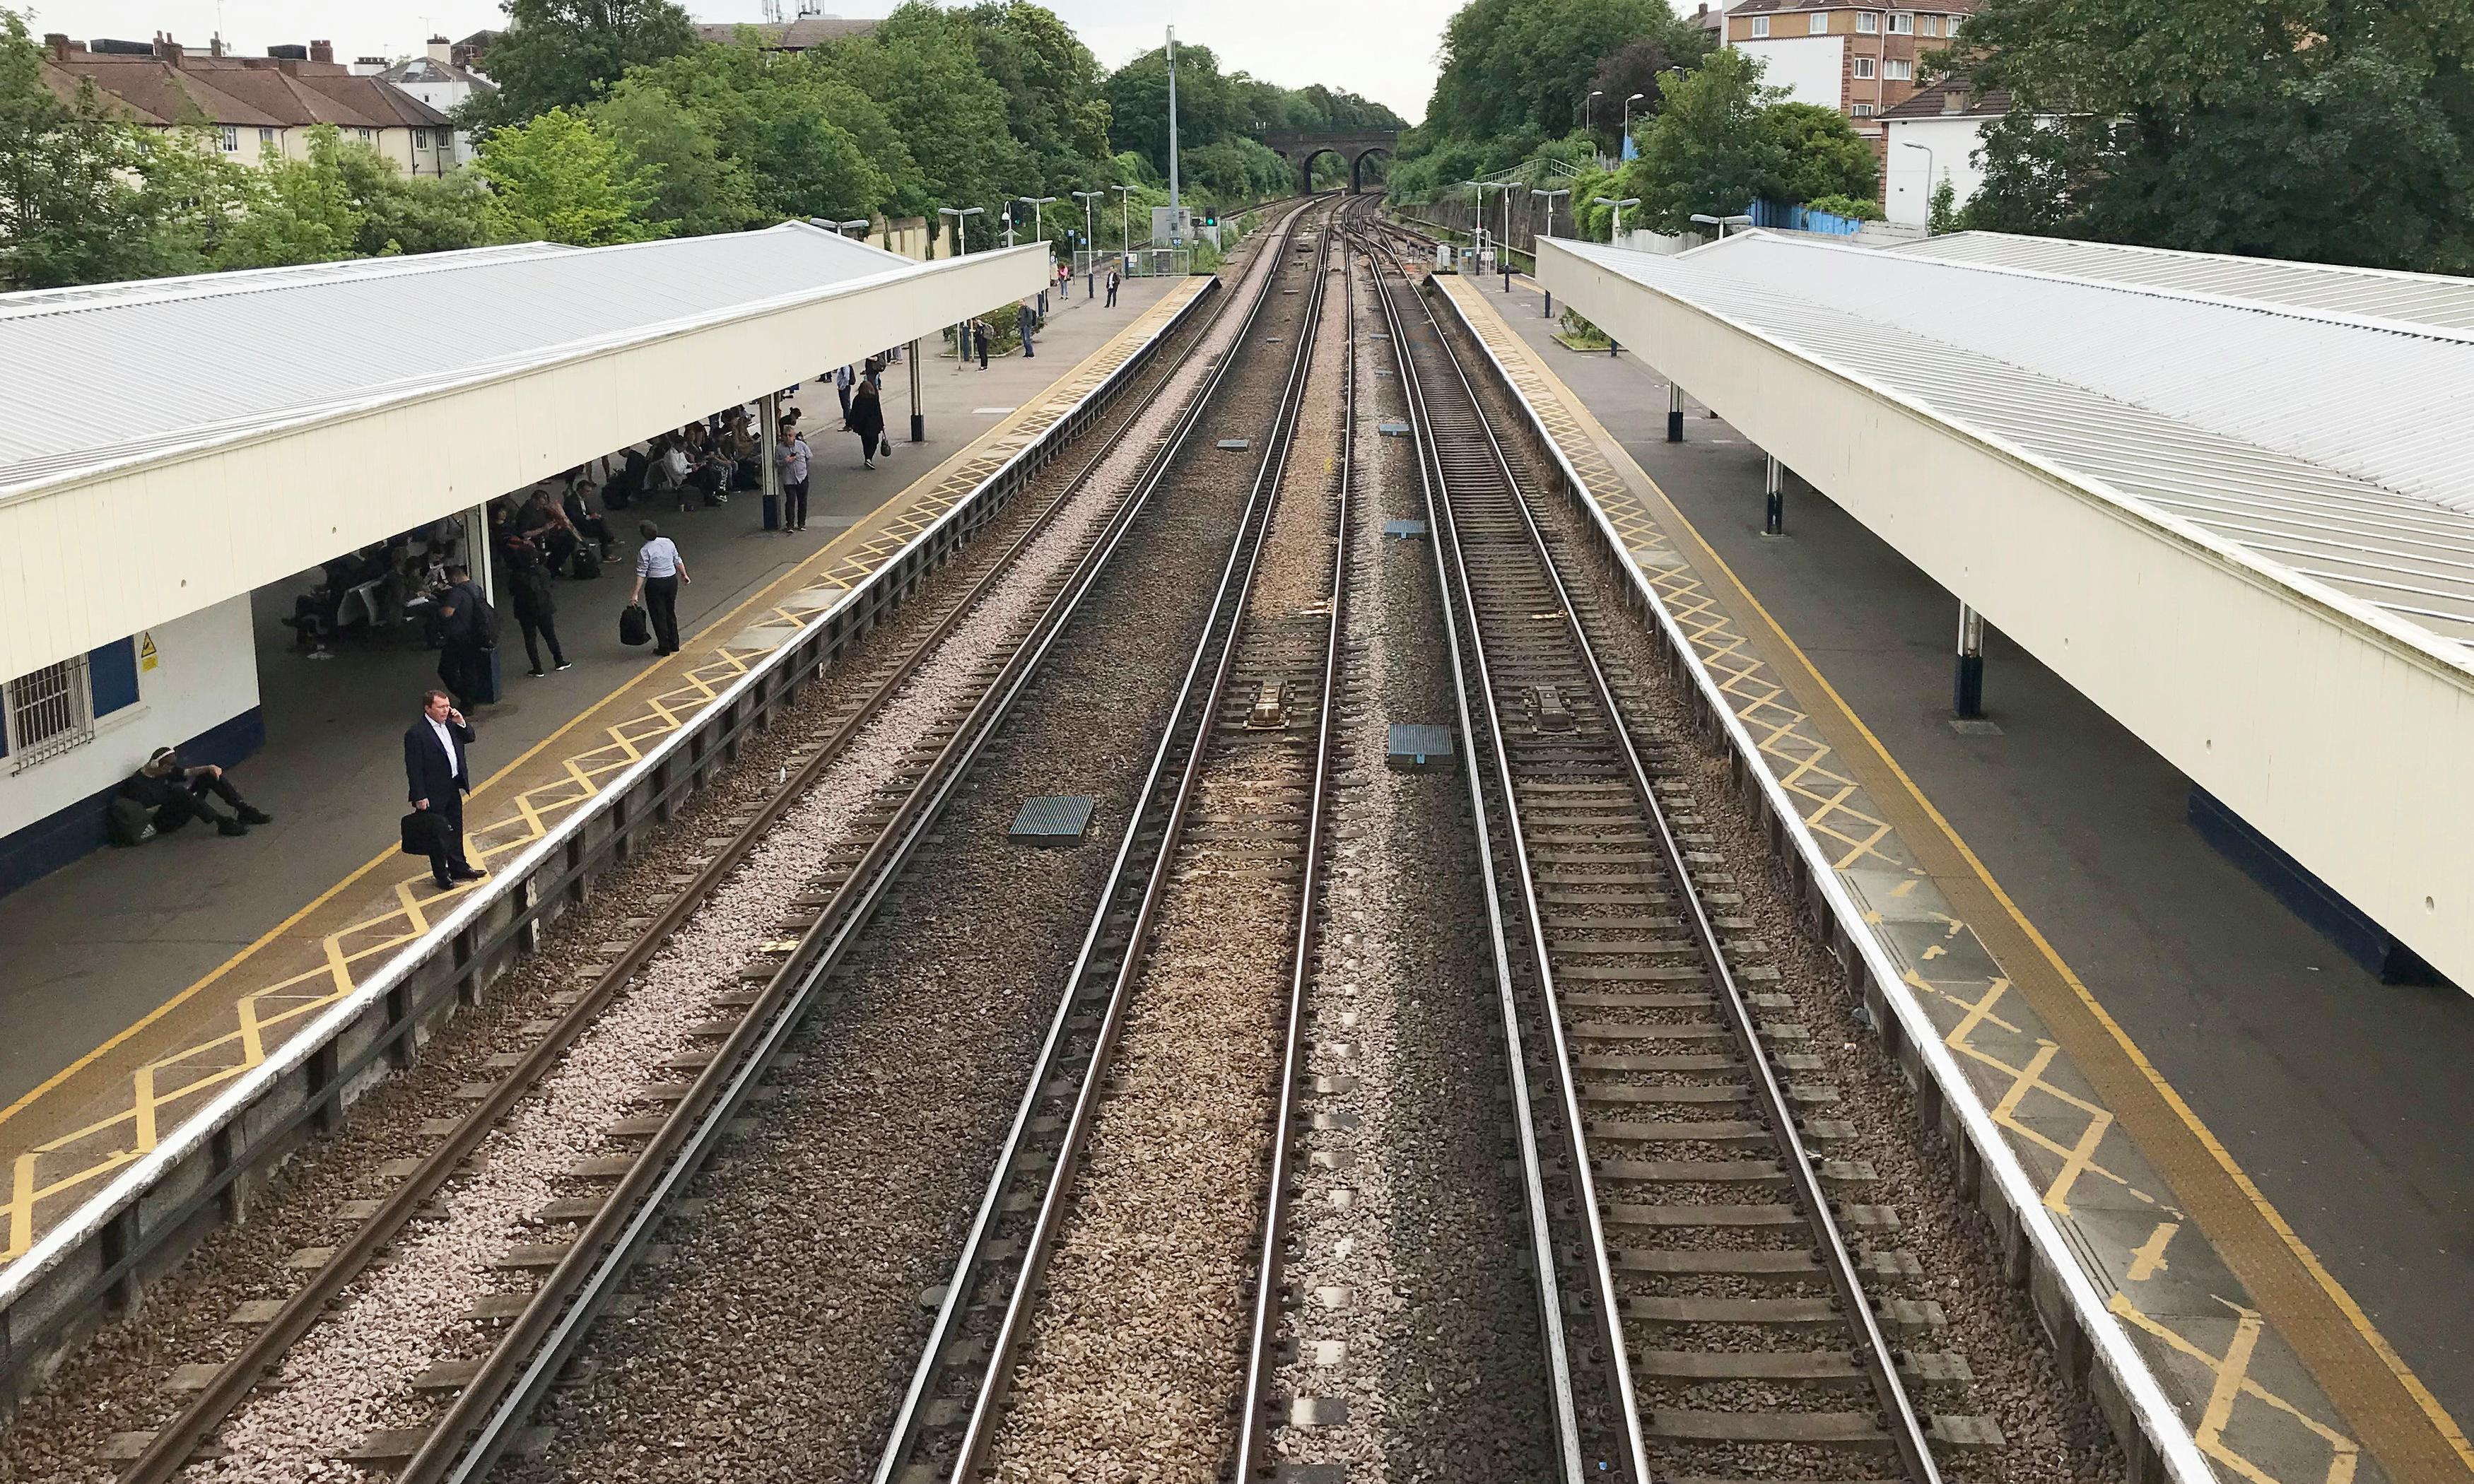 Latest South Western rail strike causes travel chaos for commuters